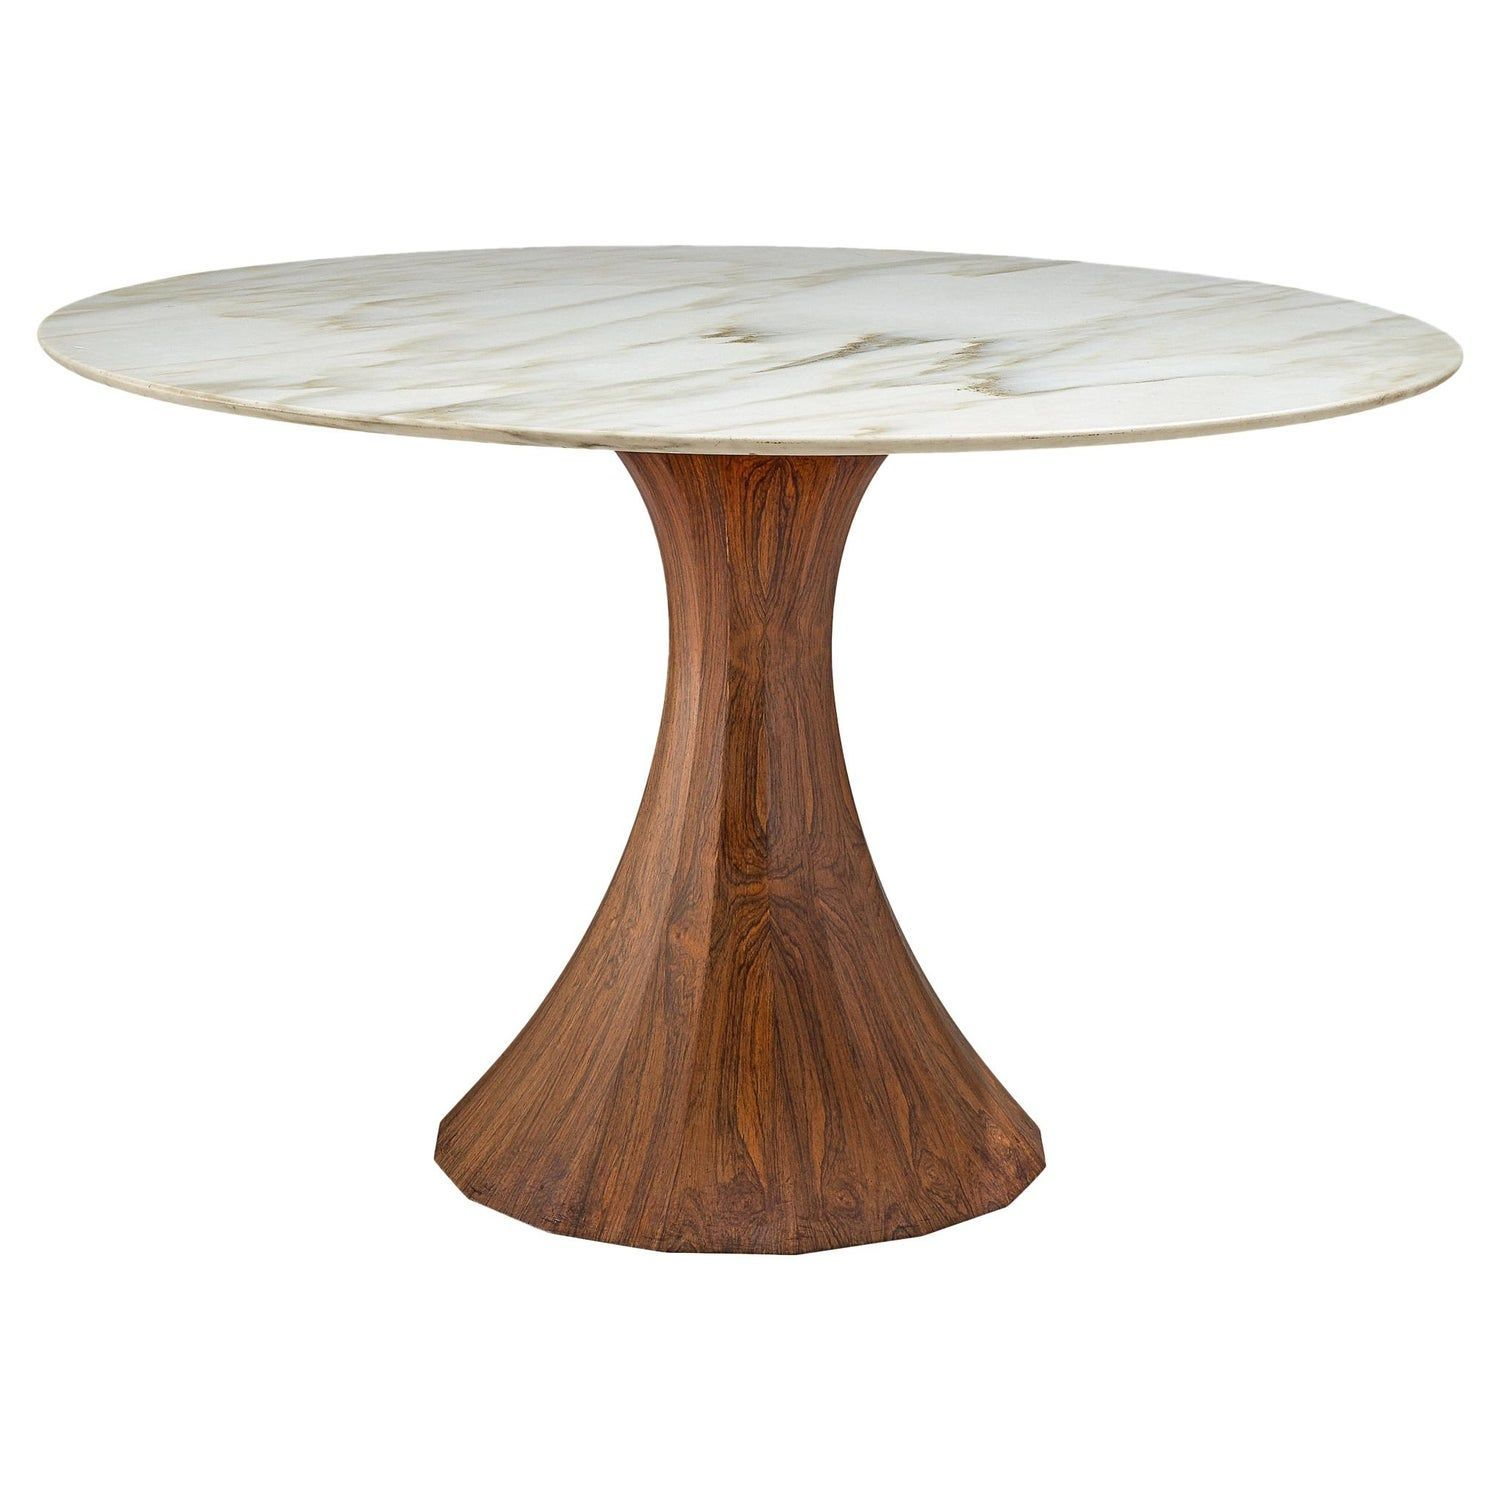 Italian Round Marble Table With Wooden Pedestal Circa 1970 Marble Pedestal Table Marble Top Dining Table Marble Table